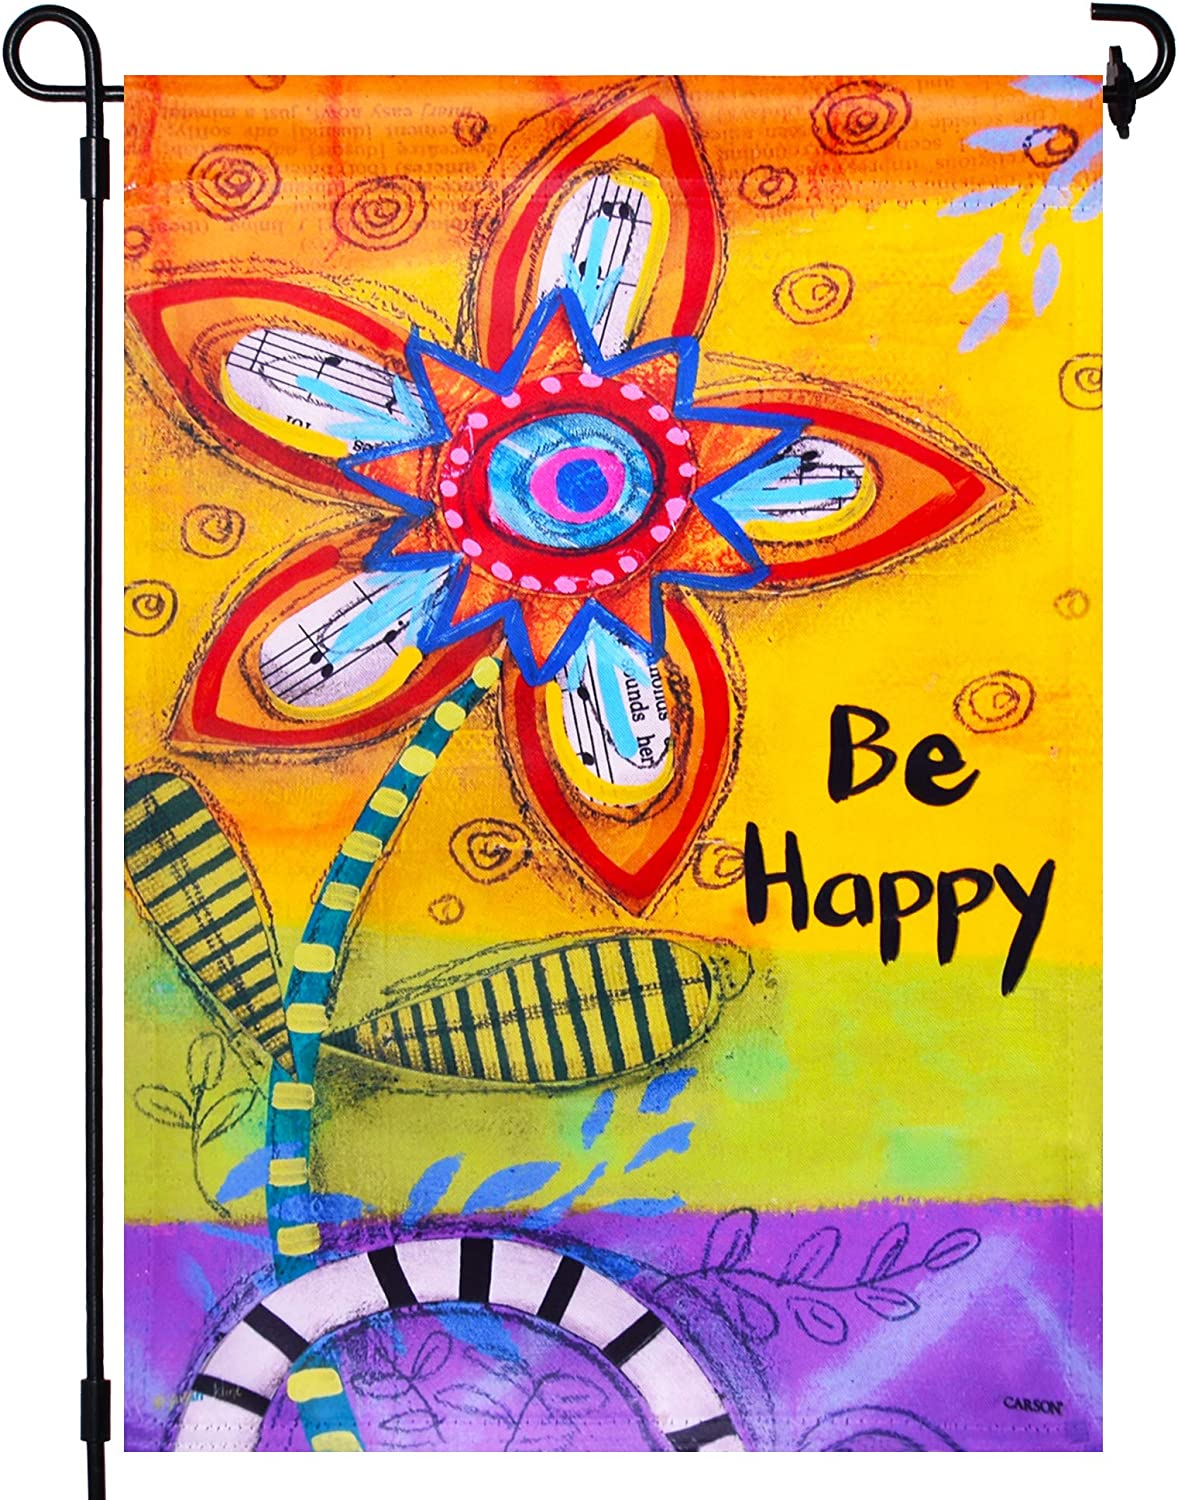 LAYOER Home Garden Flag 12.5 x 18 Inch Double Sided Welcome Be Happy Decorative Flags Children's Day (Oil Painting Flower)